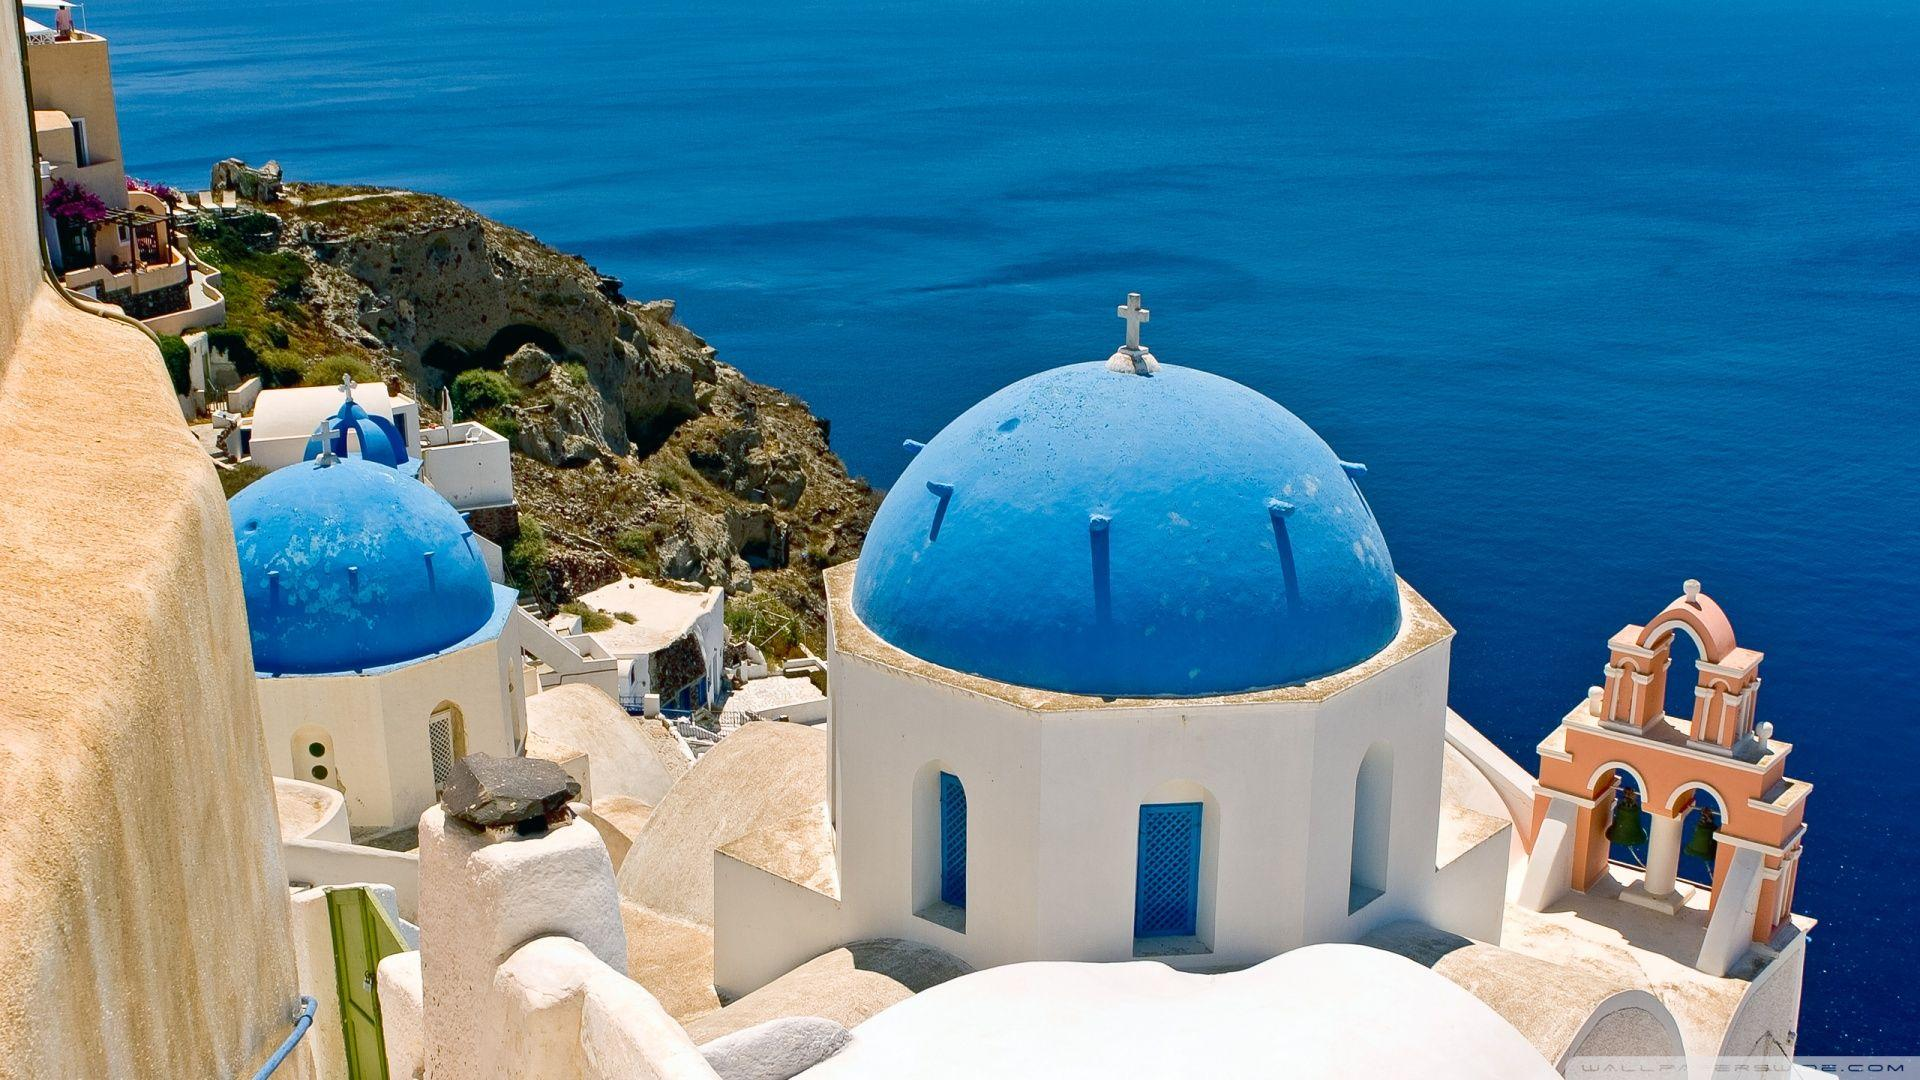 Download Oia Santorini Greece Wallpapers 1920x1080